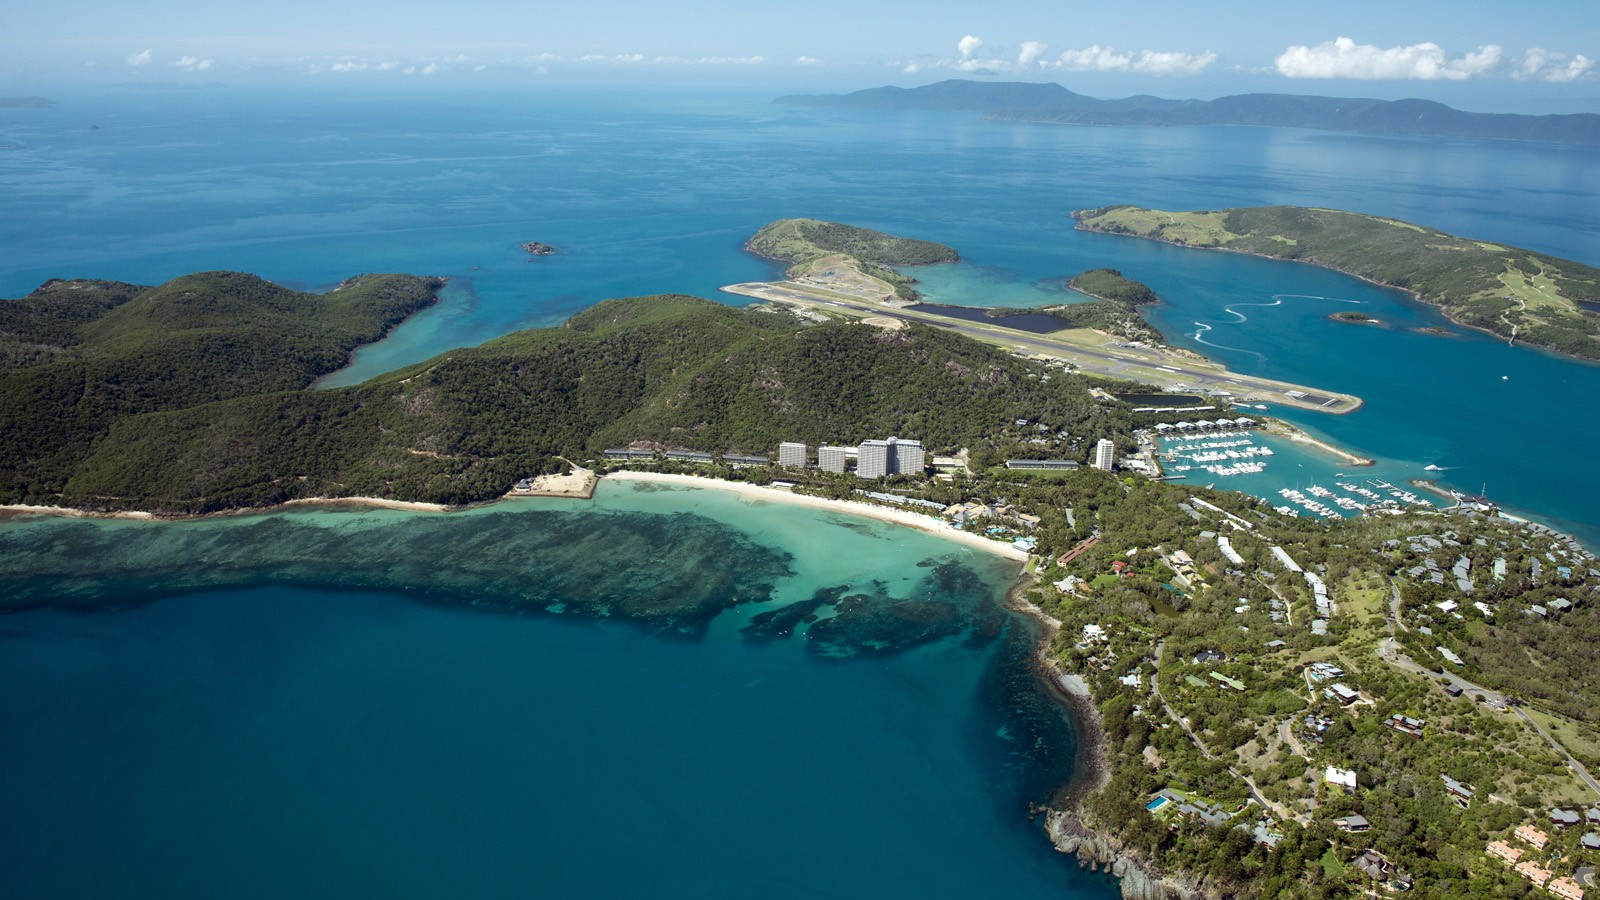 Hamilton Island aerial view Whitsunday Islands